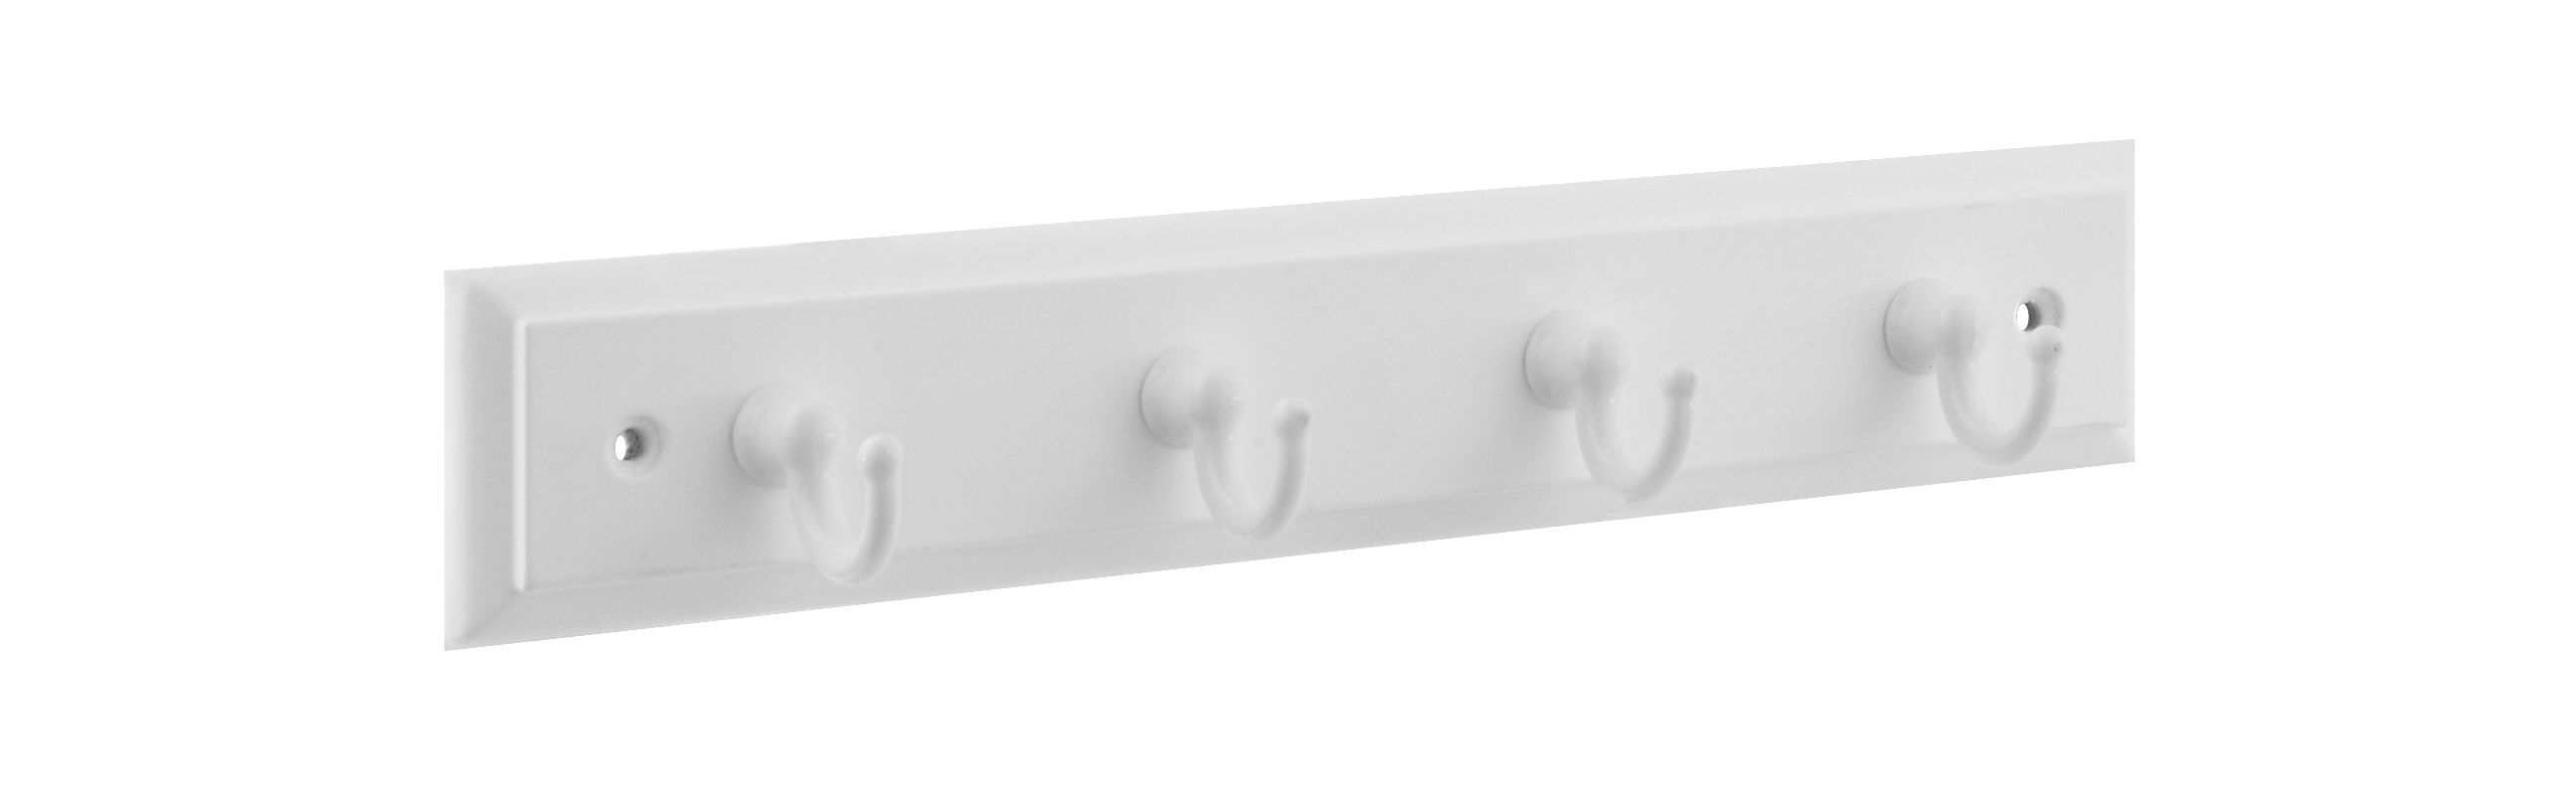 stanley home designs b8175wht white on white inch long x